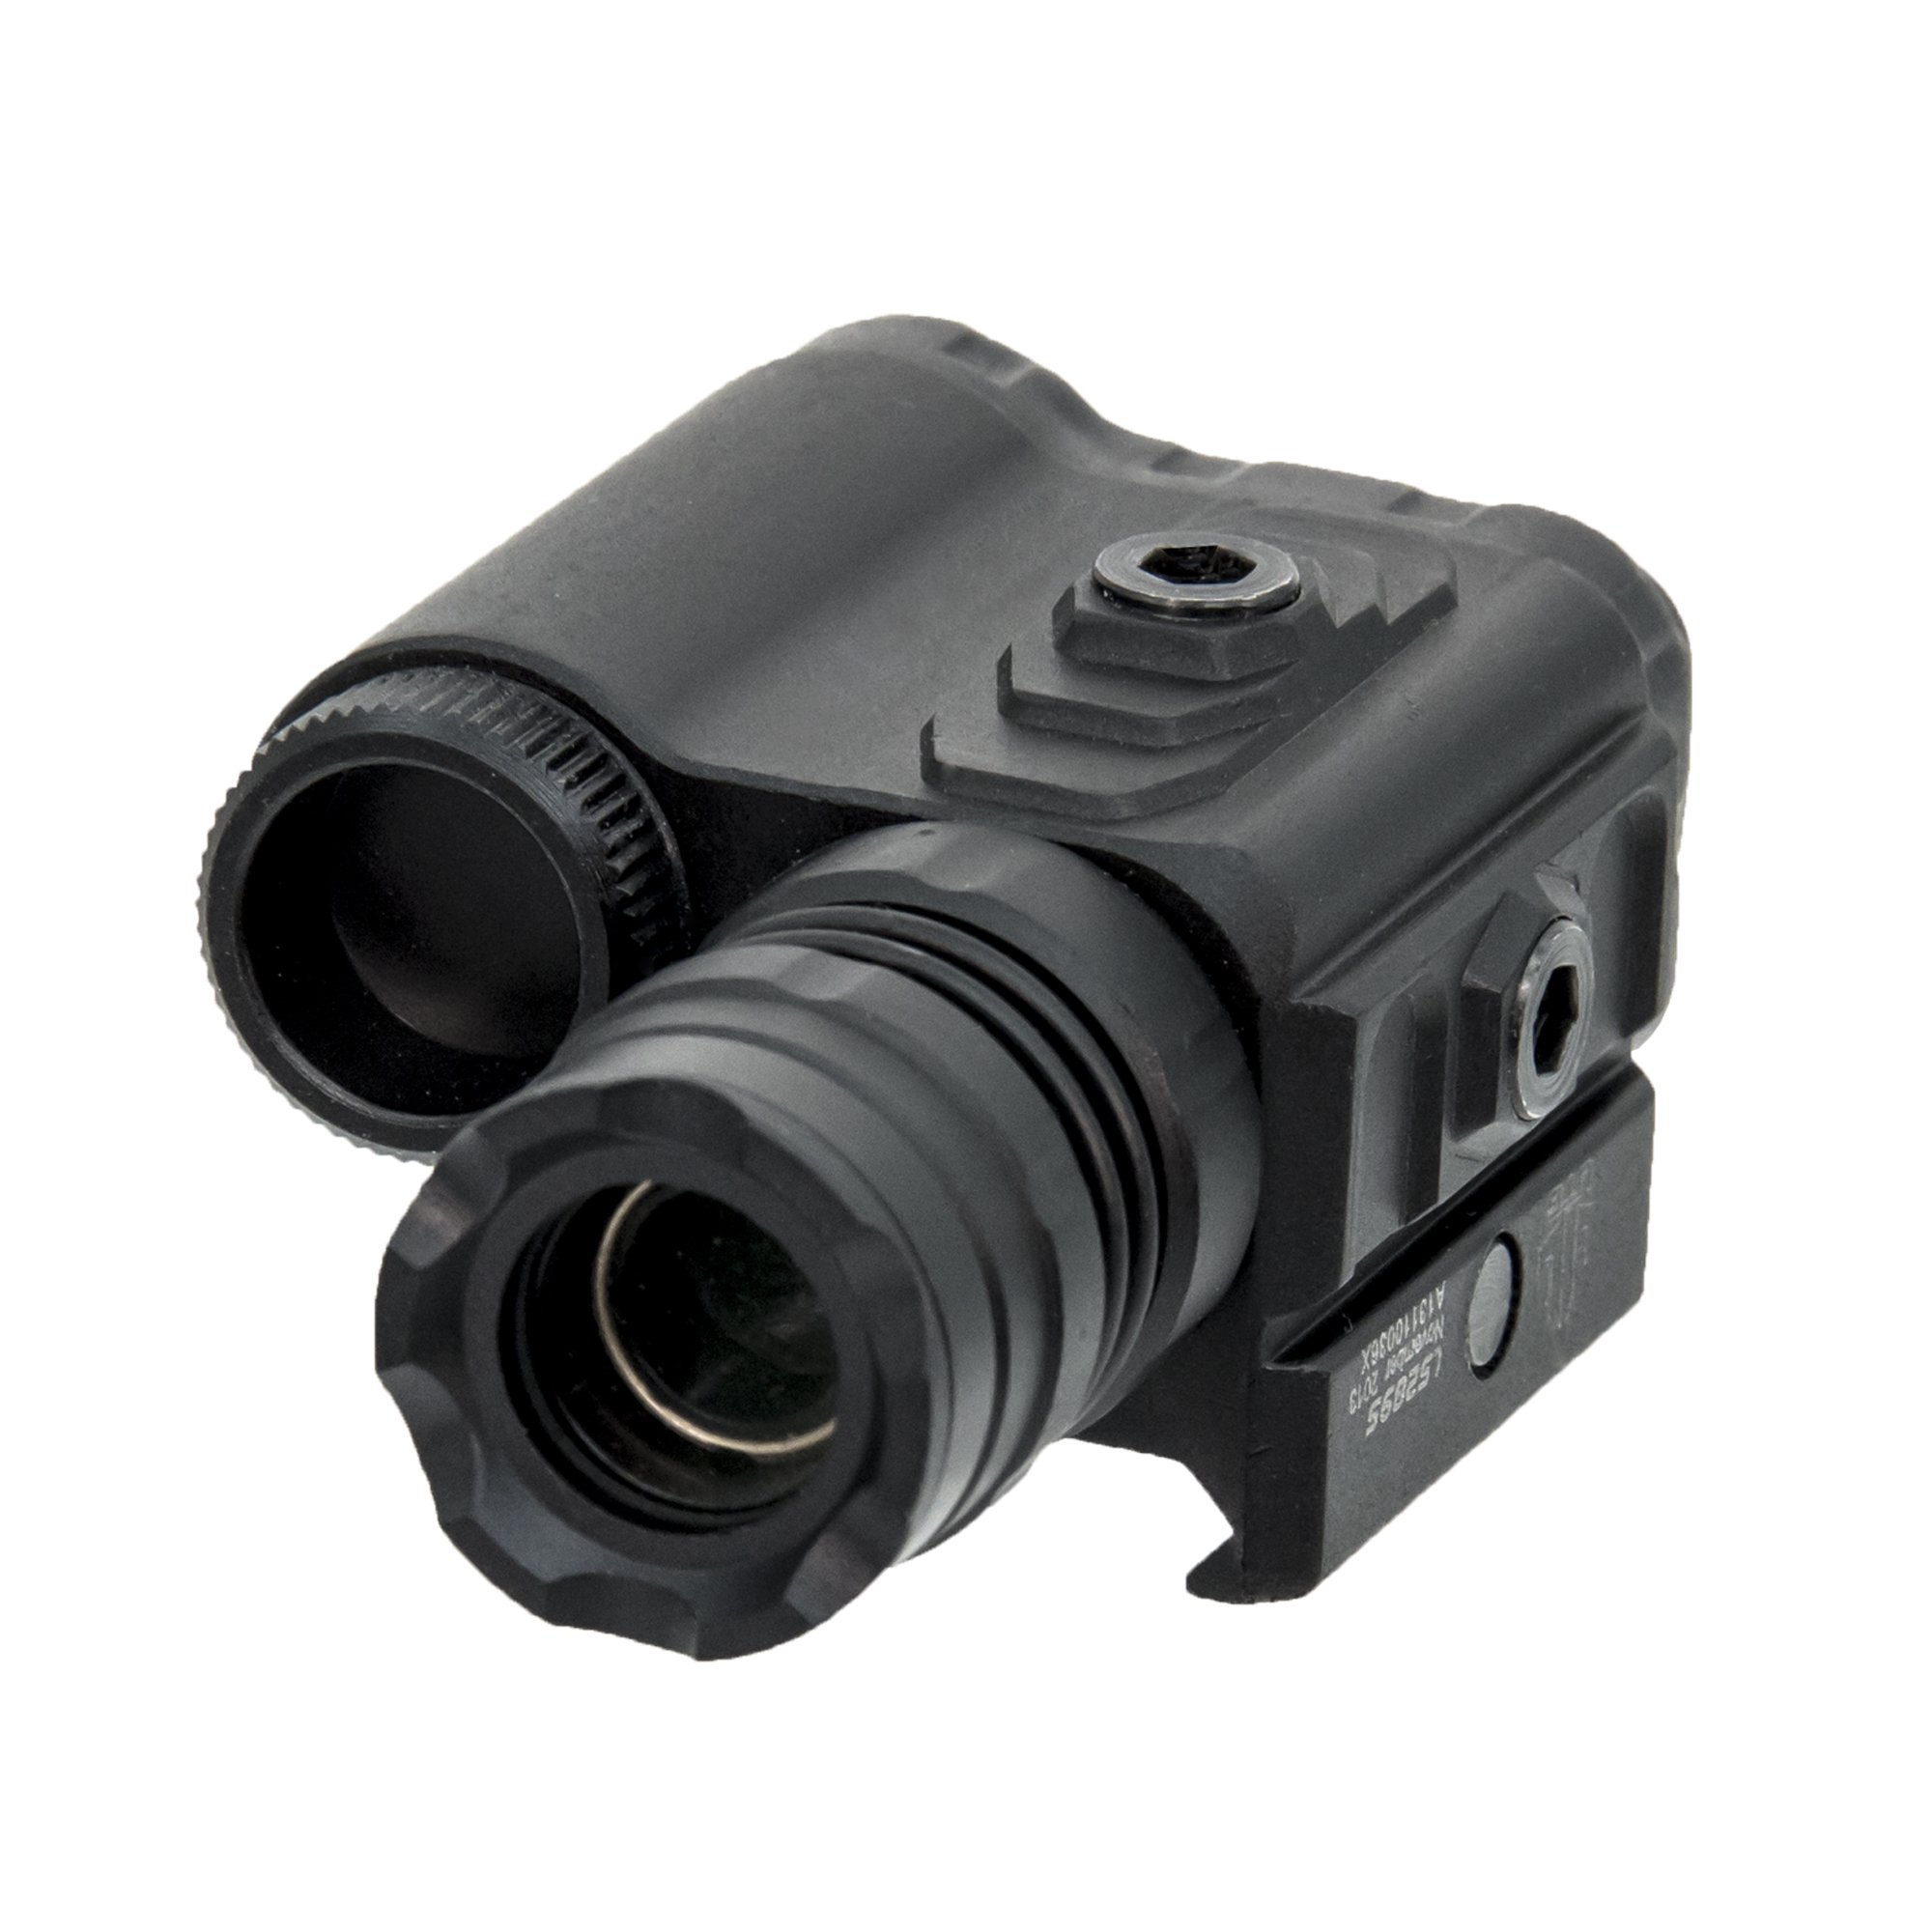 UTG Instant Target Aiming BullDot Compact Green Laser by UTG